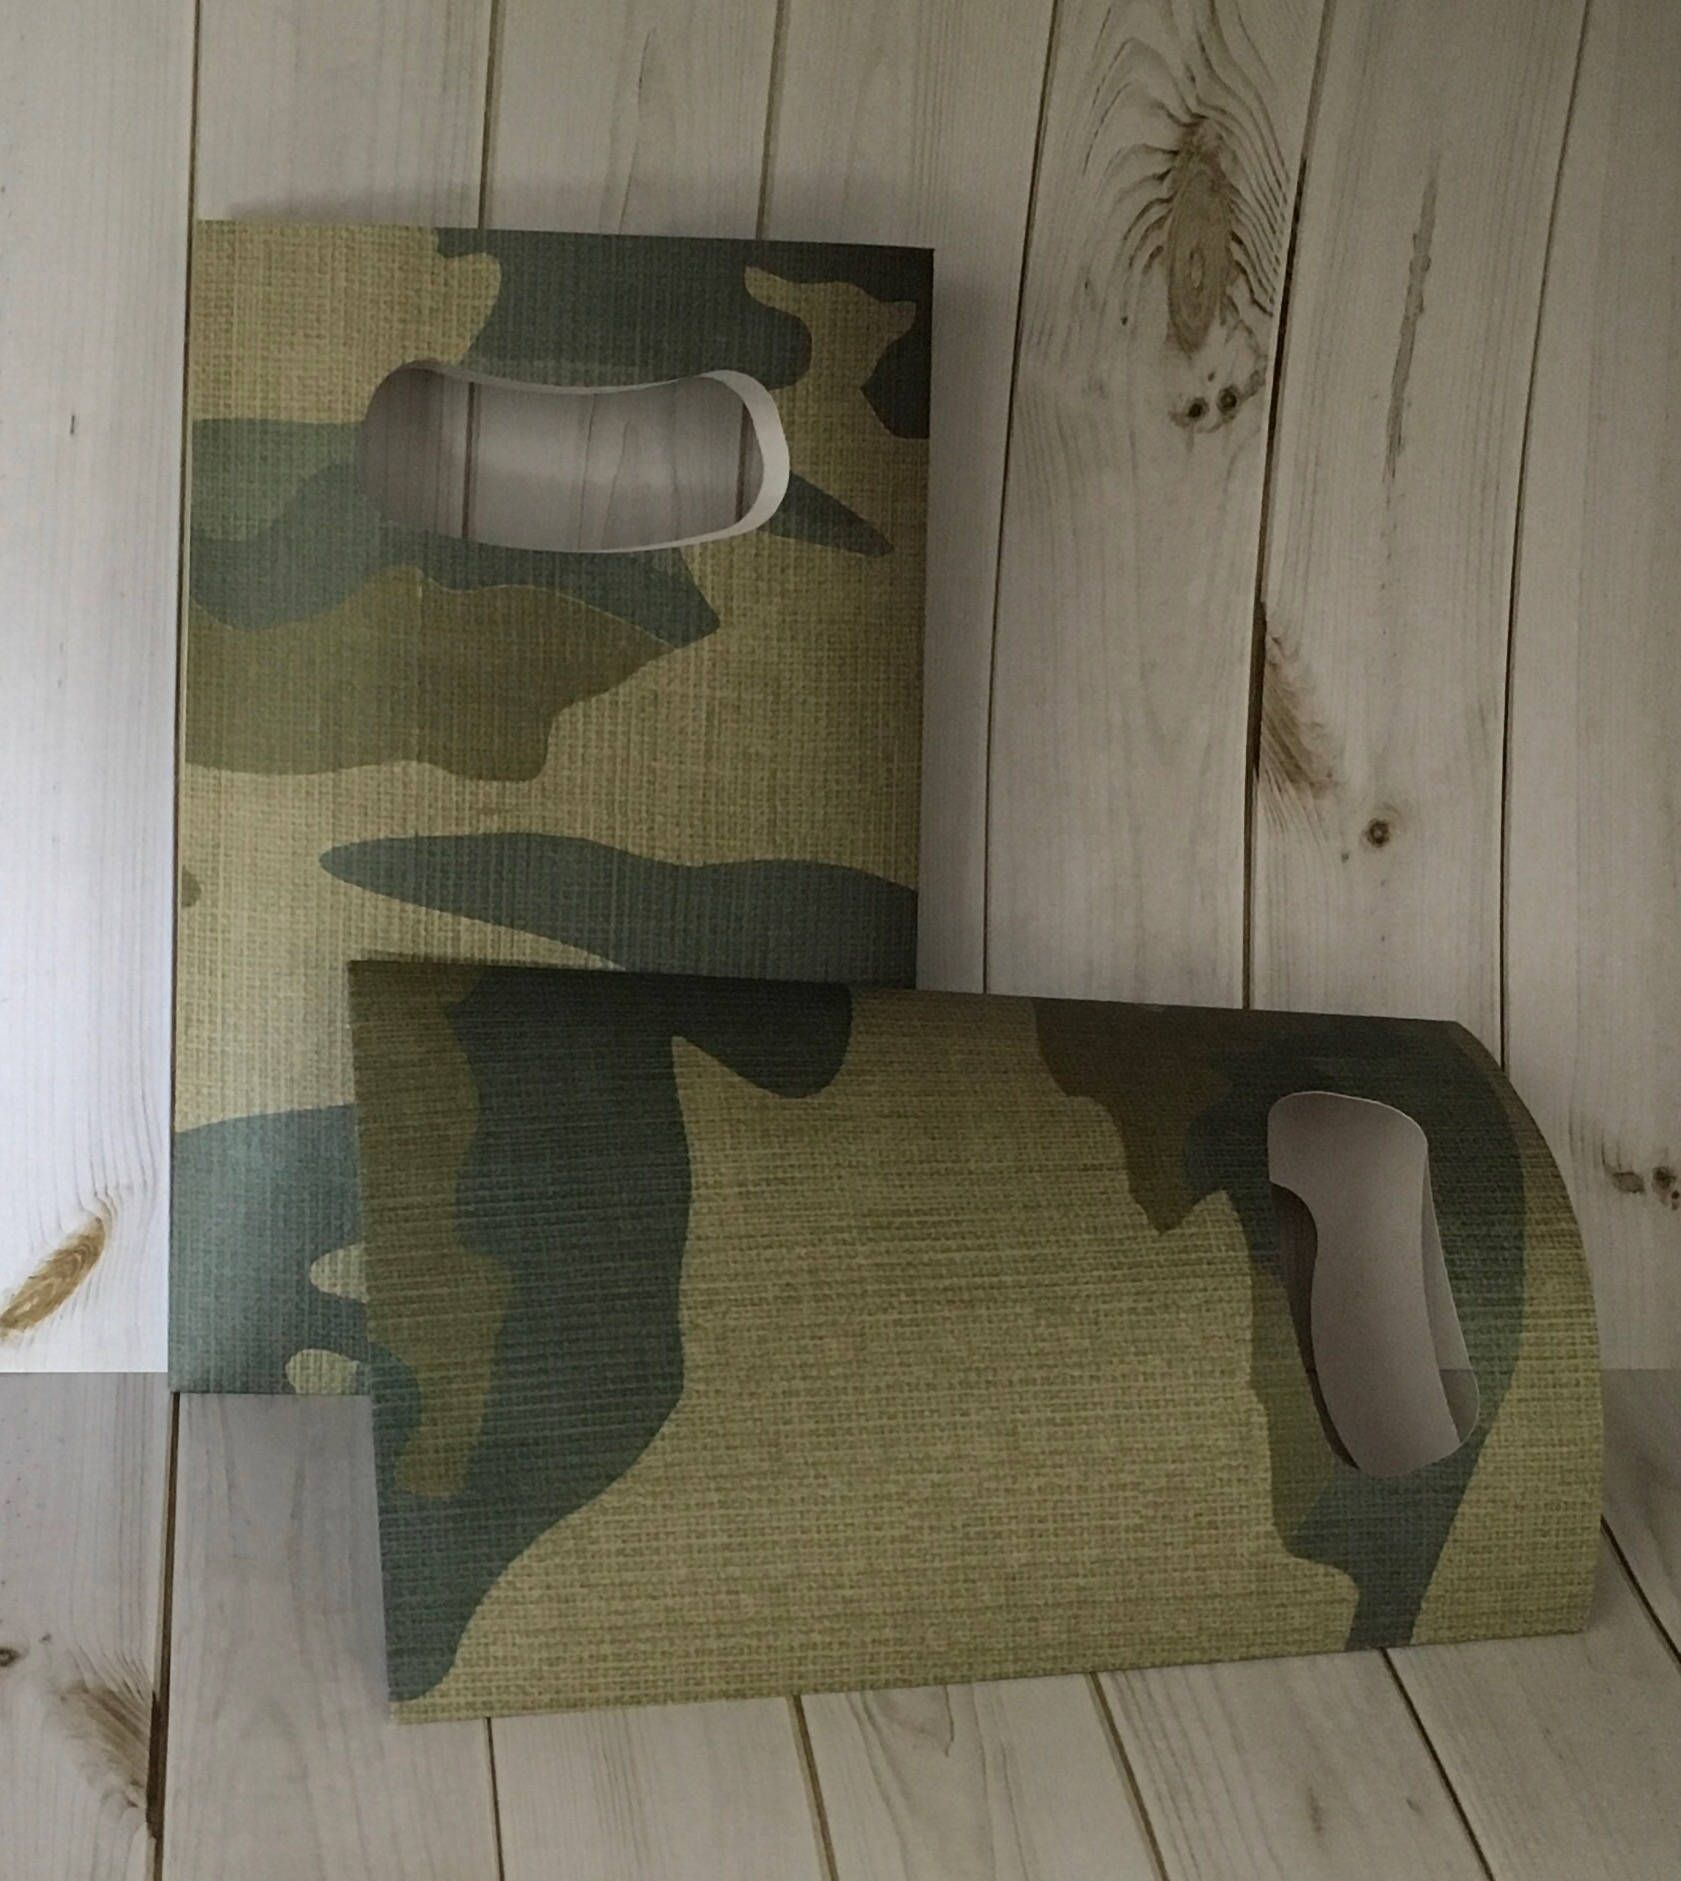 Camouflage Flat Paper Favor Bags With Cut Handles Gift Bag Cookie Candy By Thepapercove On Etsy